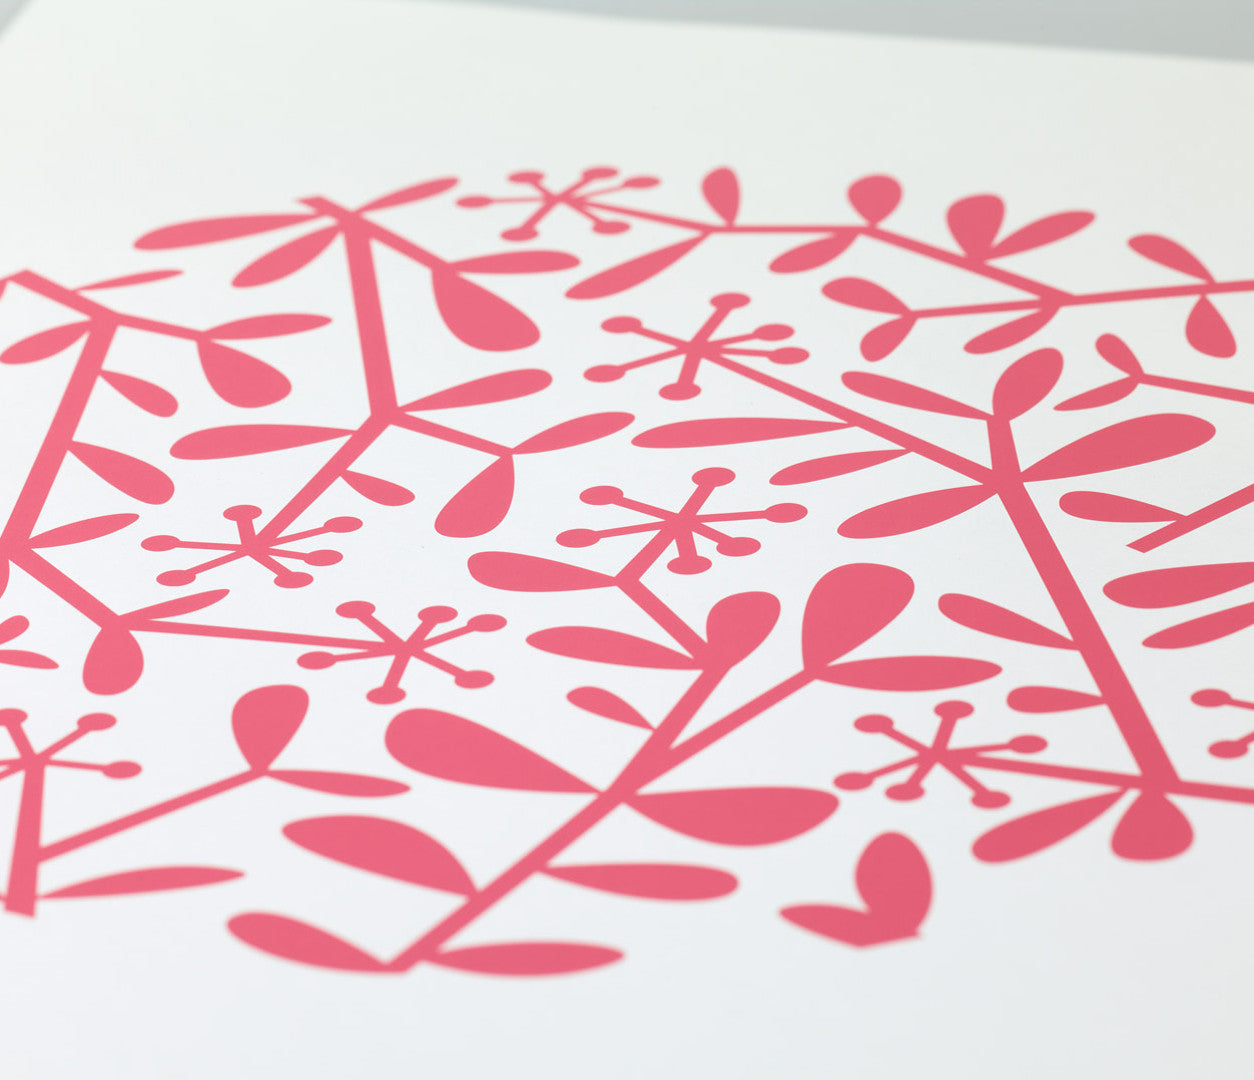 'Flora' Art Print in Raspberry Sorbet